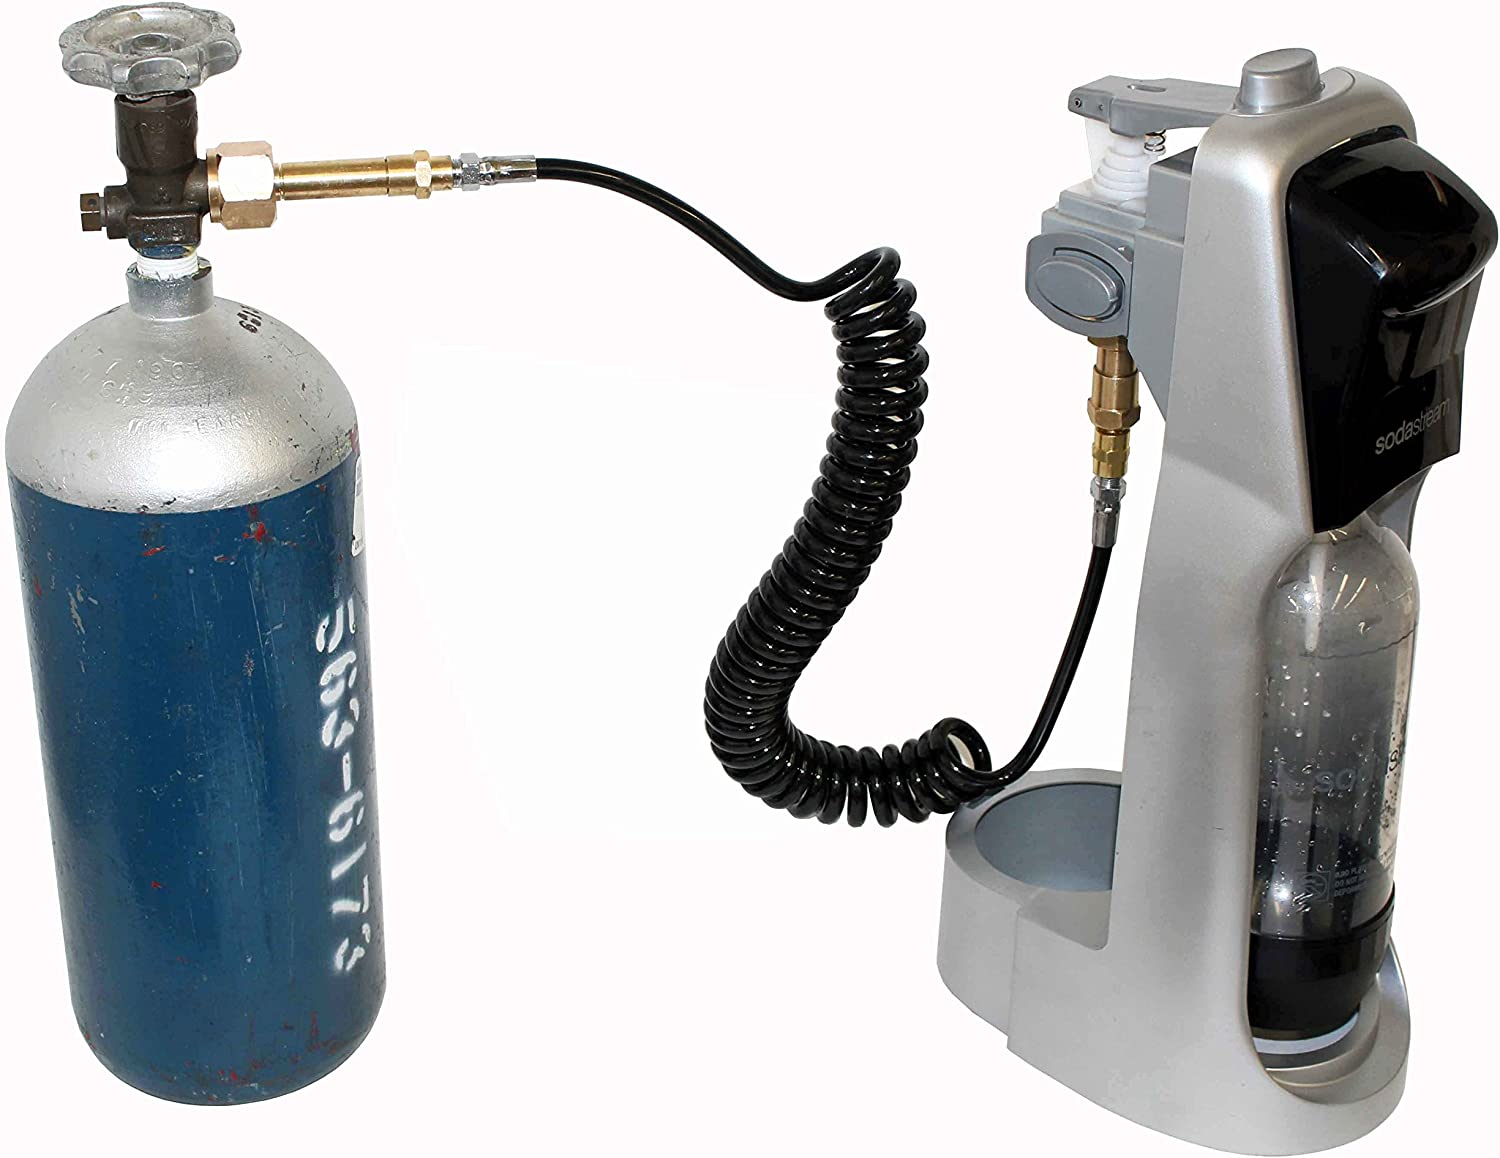 seltzer Water Home Machine Accessories. Trinity CGA-320 CO2 External Tank Coil System for Soda Maker